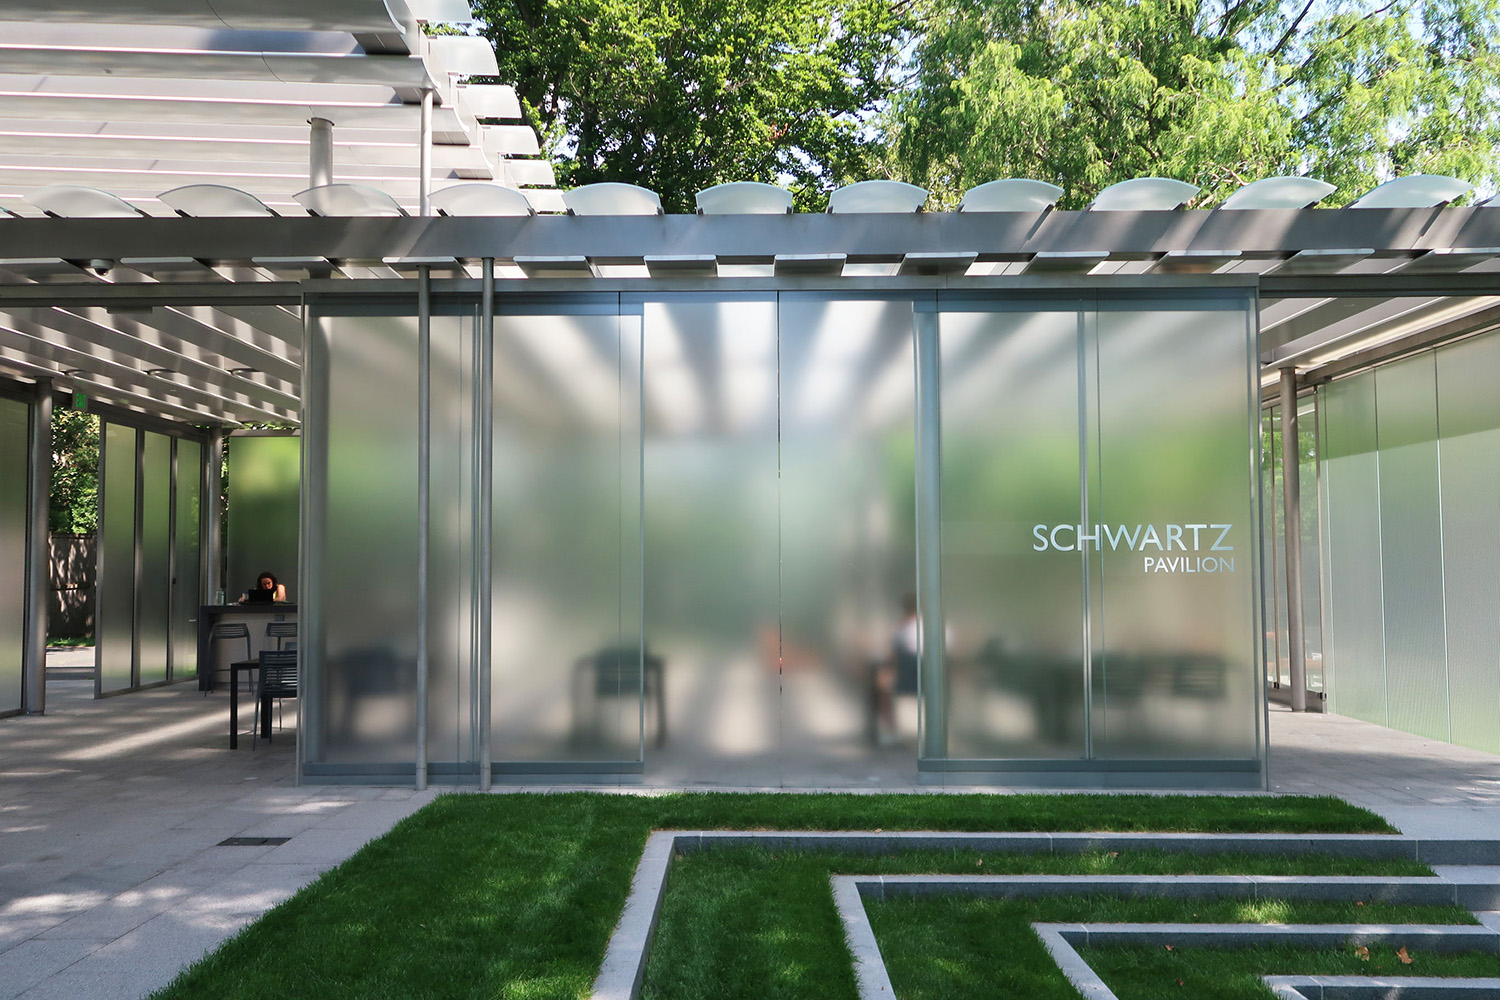 Light responsive materials of the canopy and vertical partitions provide privacy, delineate space, and display activity and occupancy Richard Kress, courtesy of James Carpenter Design Associates